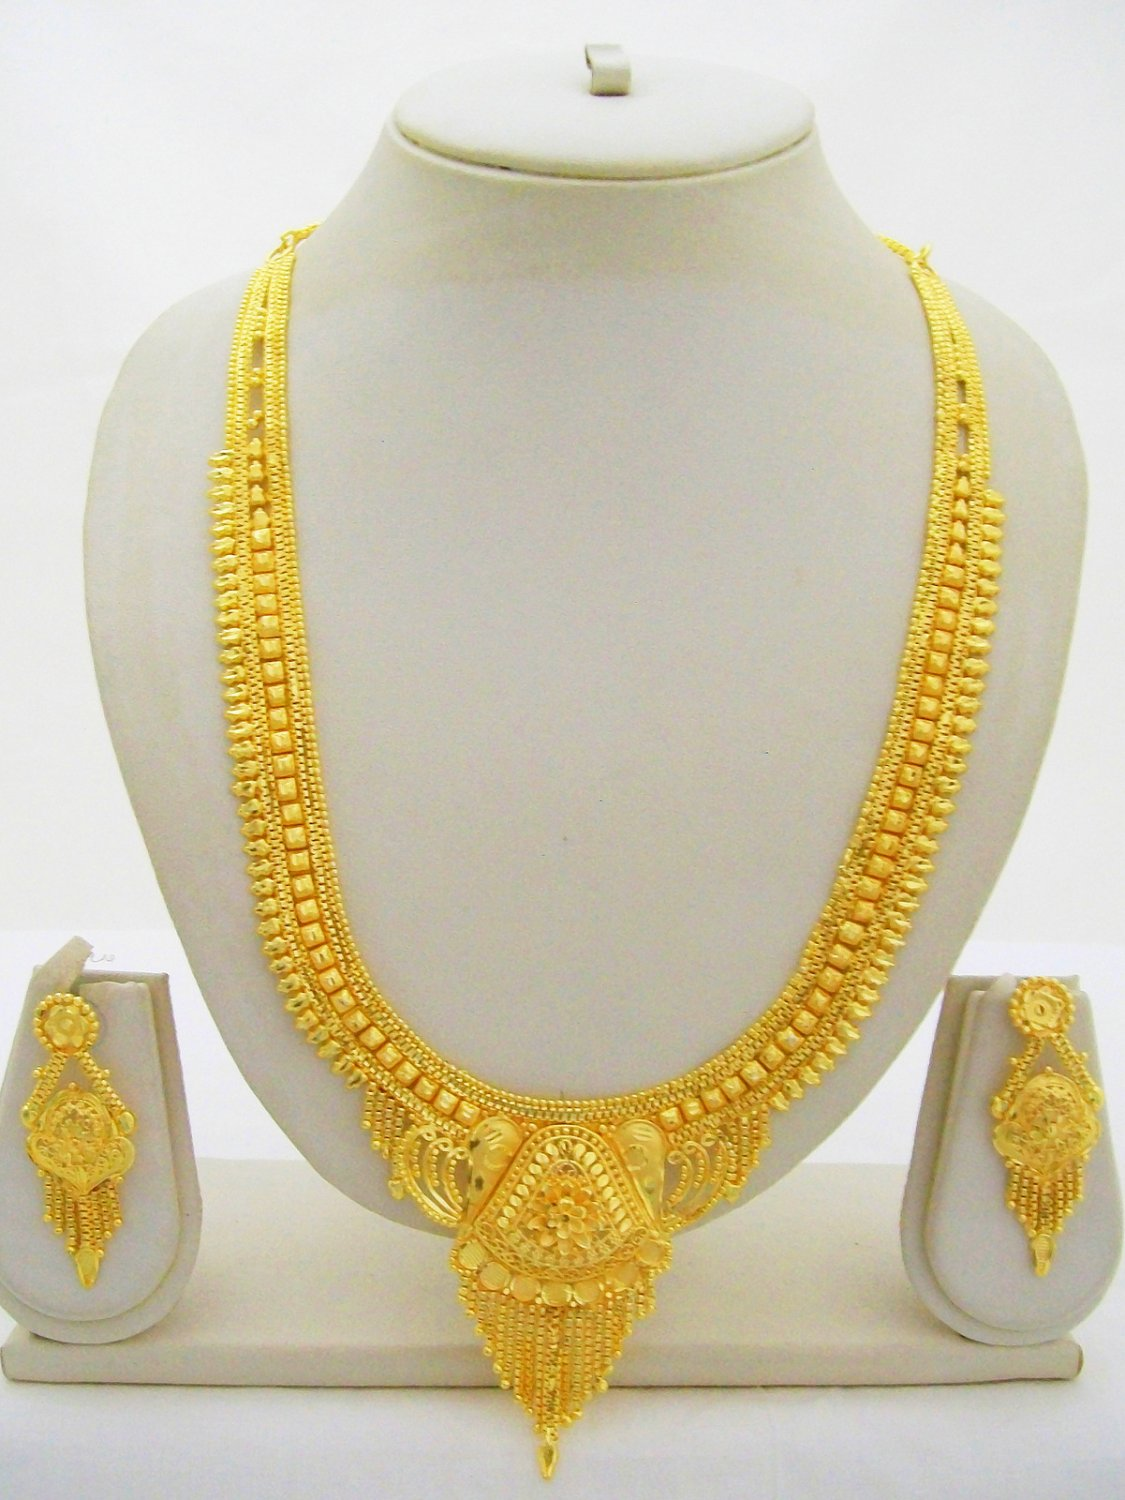 Gold Plated Indian Rani Haar Necklace Long Bridal Wedding Jewelry Set Ethnic